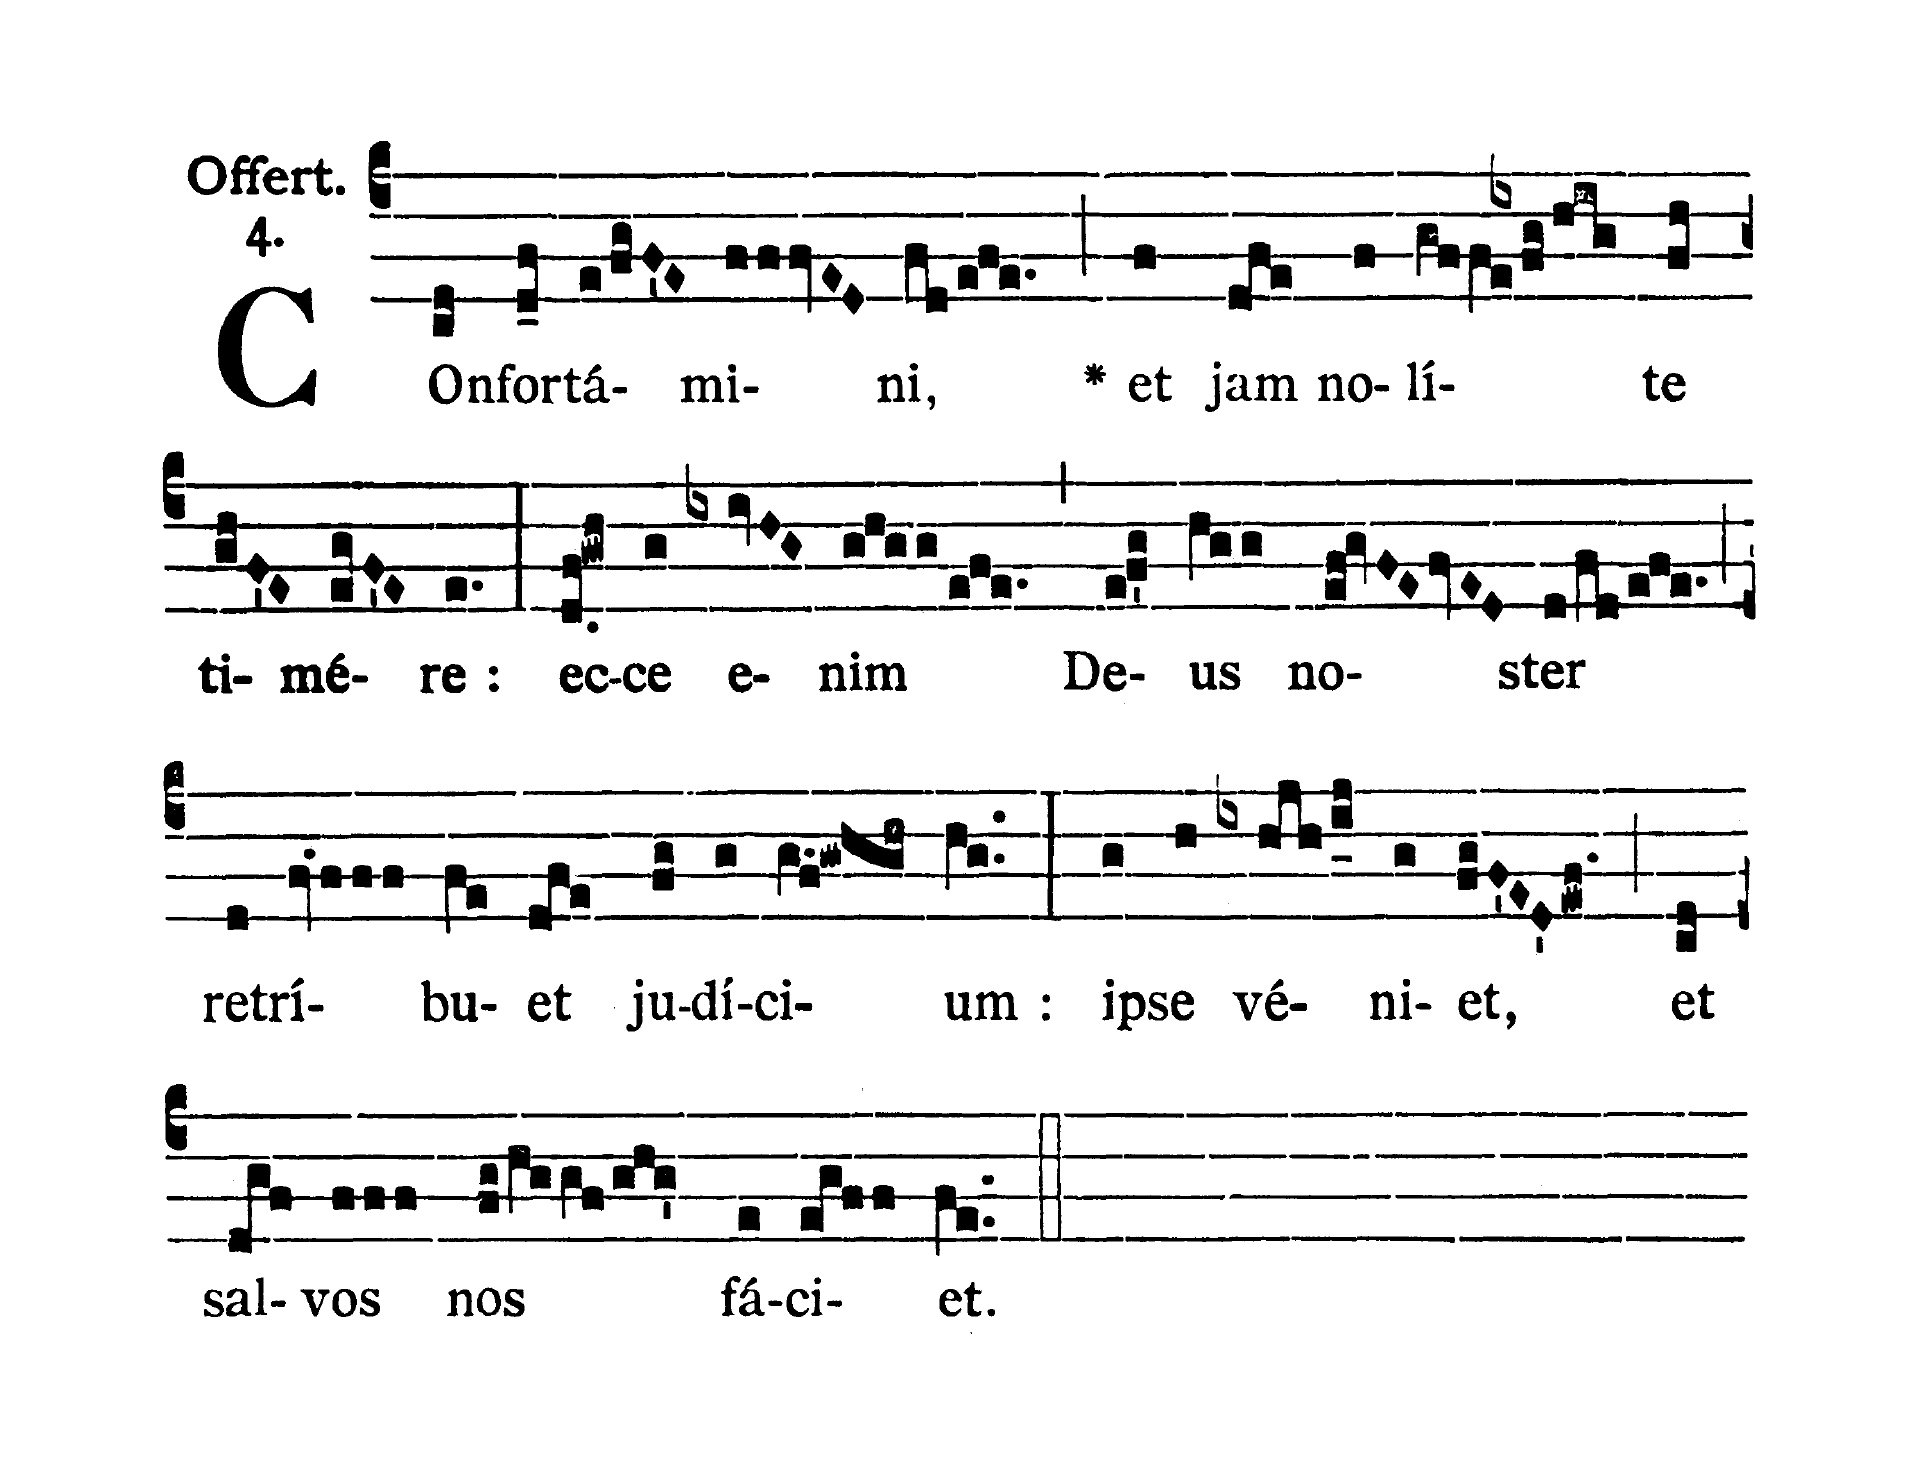 Feria IV Quatuor Temporum Adventus (Ember Wednesday of Advent) - Offertorium (Confortamini)